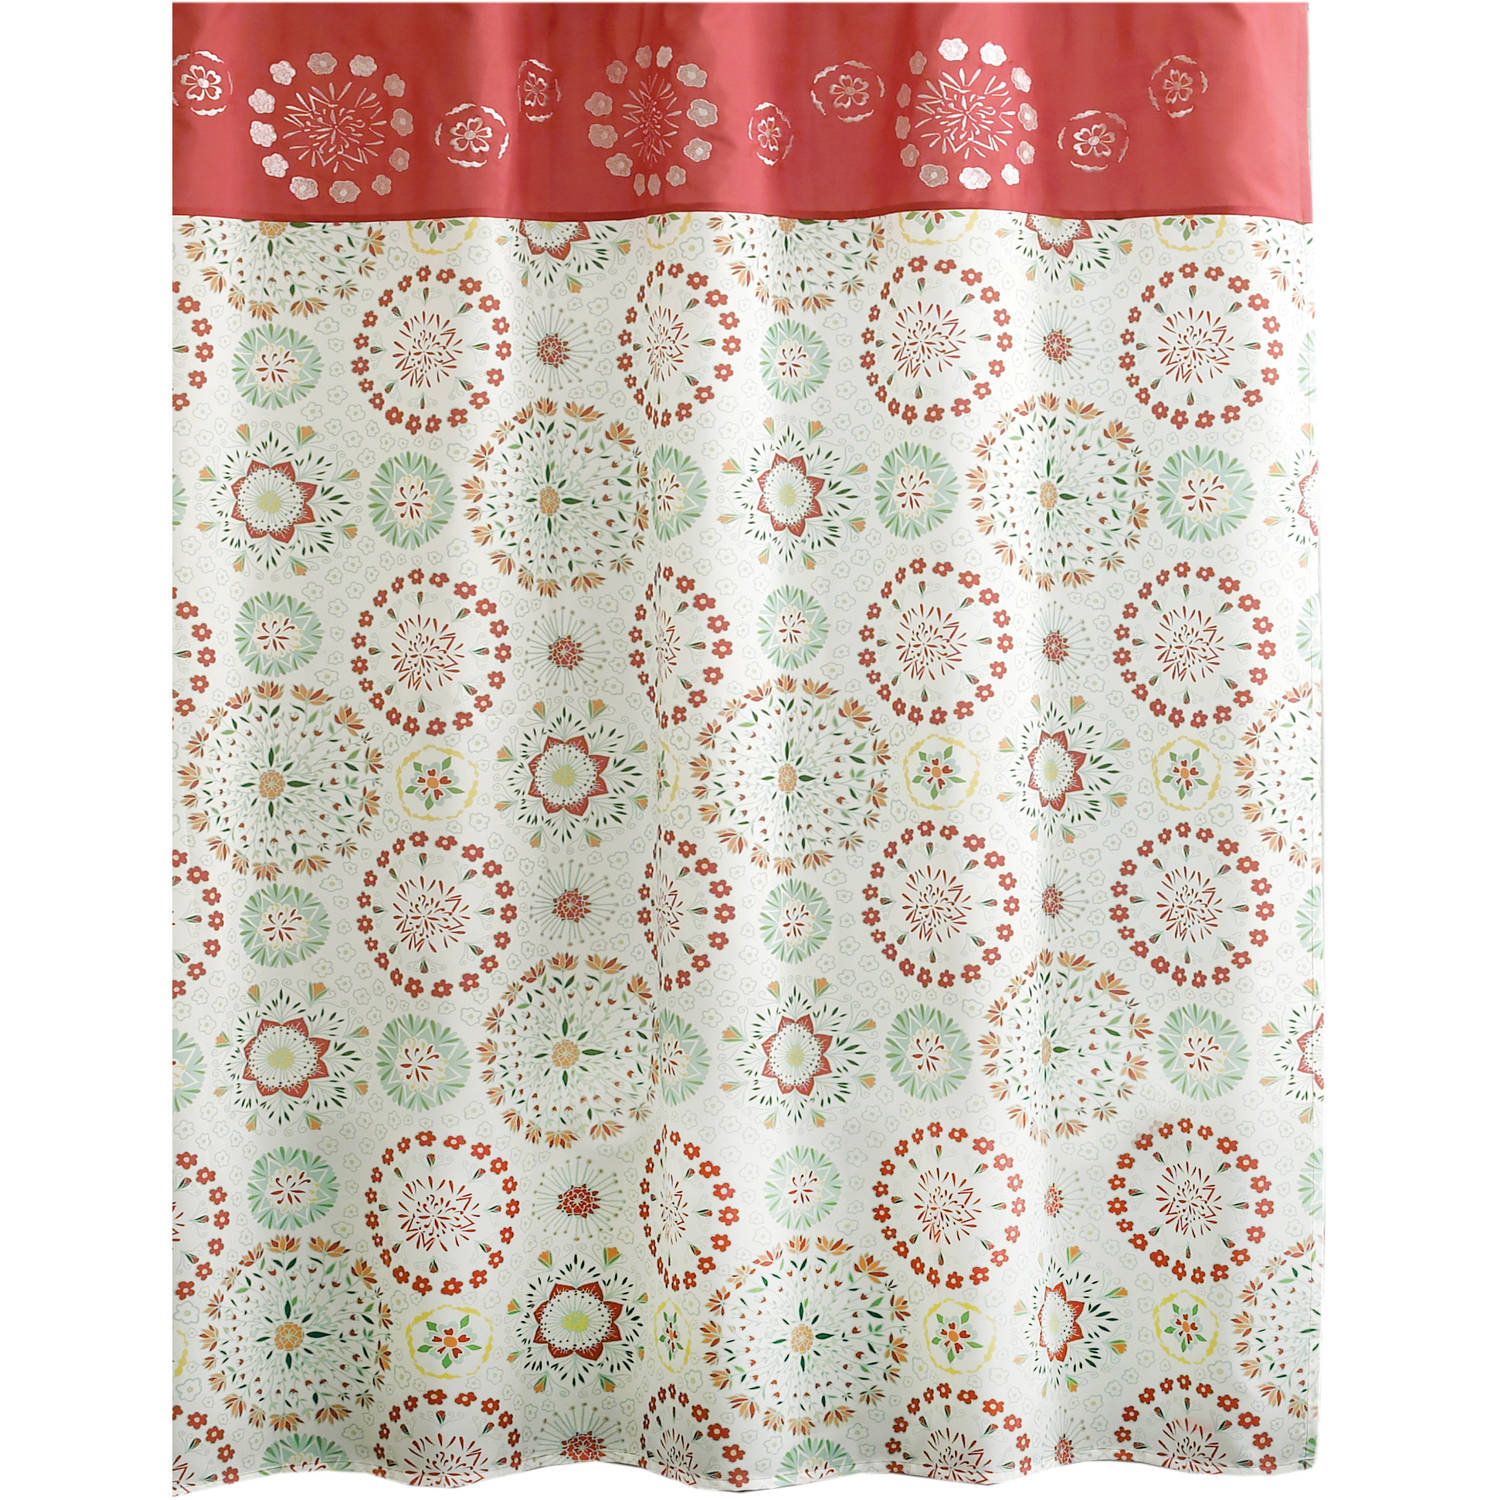 "Excell Flower Bomb 70"" x 72"" Fabric Shower Curtain, Multi-Colored"